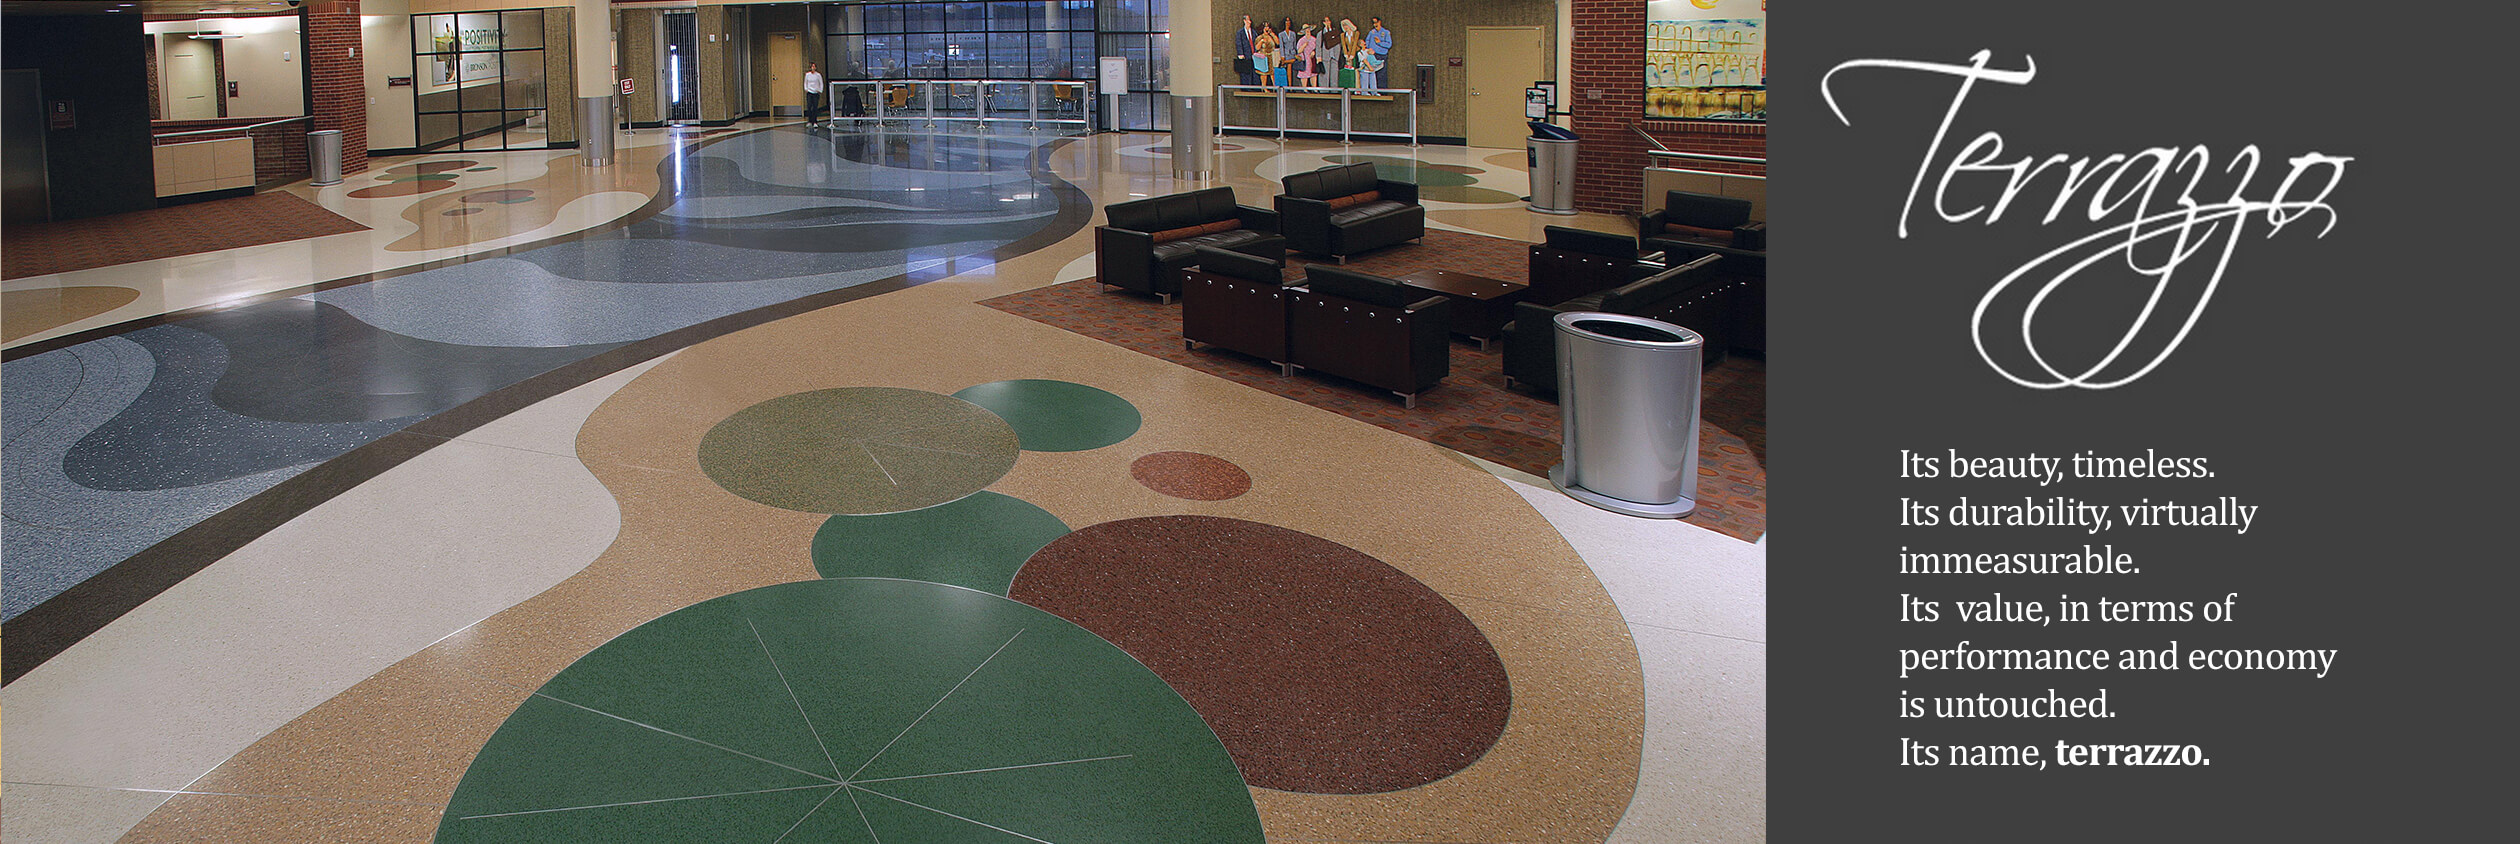 NCTA | North Central Terrazzo Association